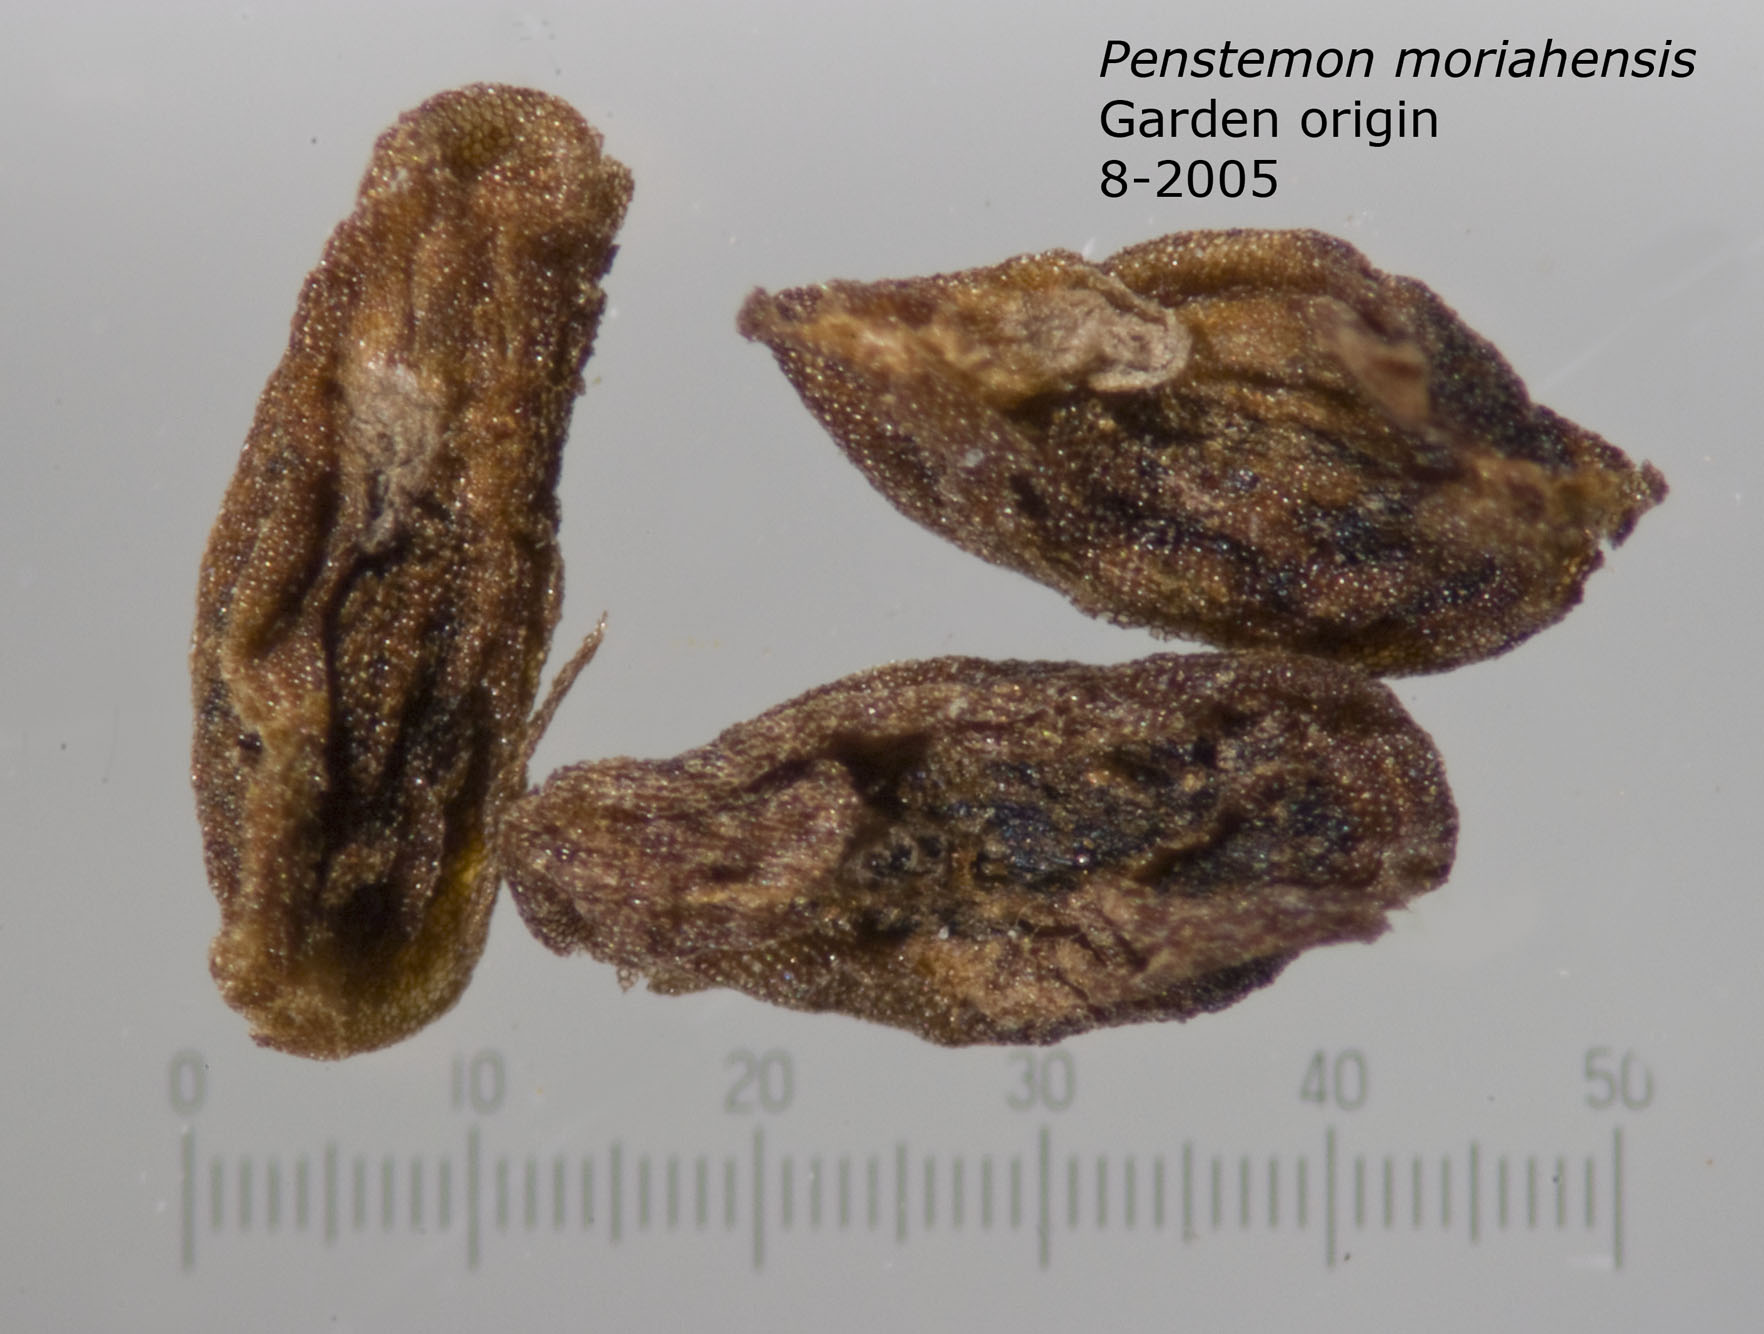 Penstemon moriahensis group of seeds